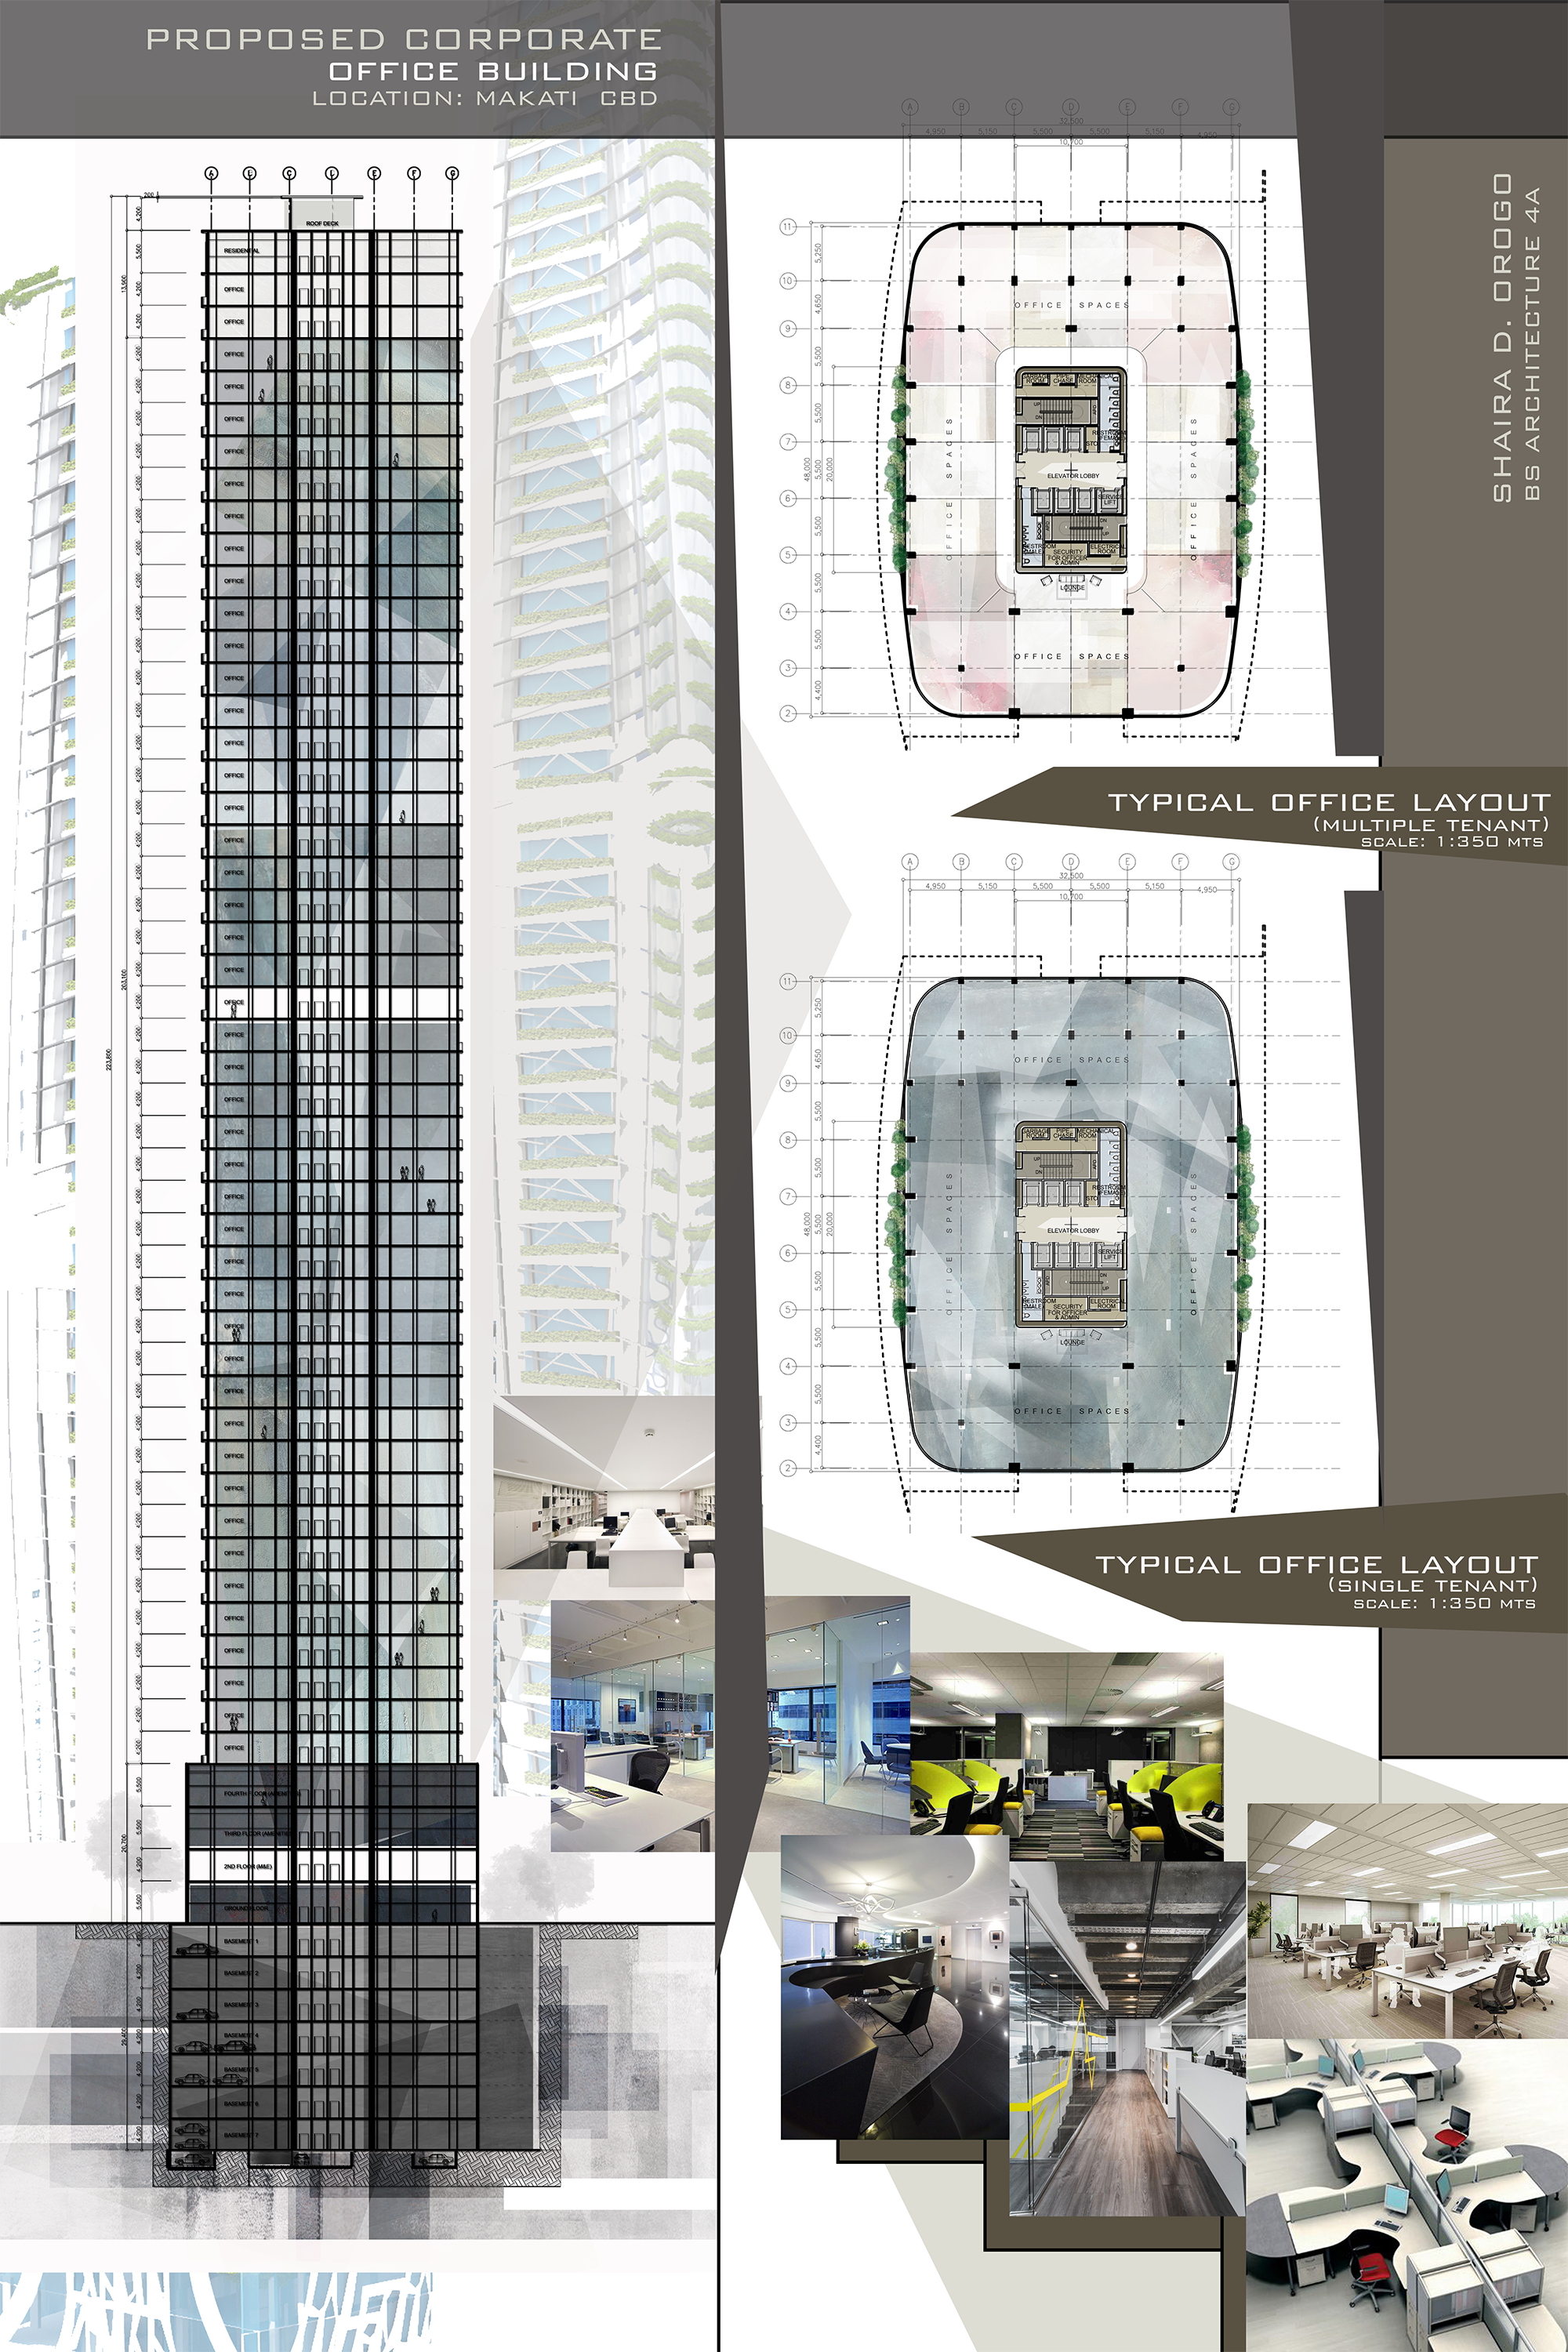 Design 8 / Proposed Corporate Office Building / High-rise Building / Architectural  Layouts /